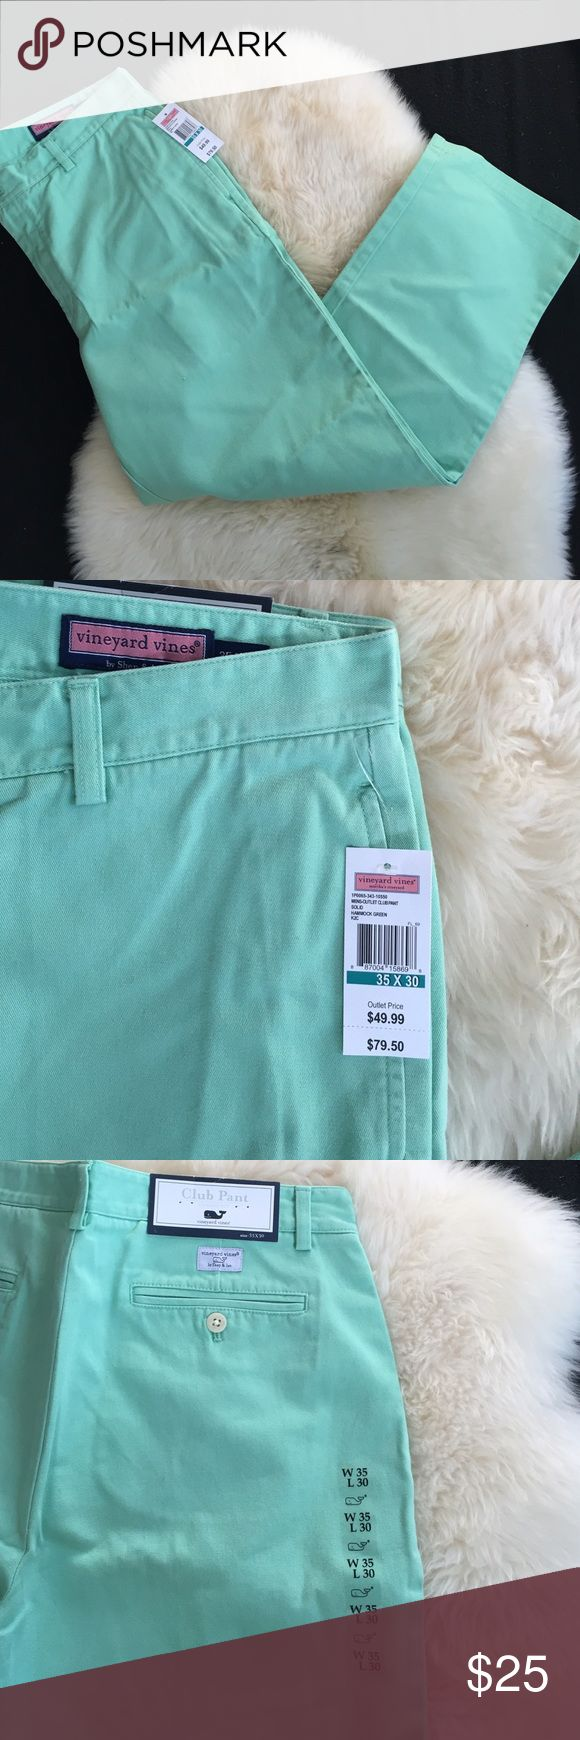 Spotted while shopping on Poshmark: Vineyard Vines NWT men's club pant 35x30 mint! #poshmark #fashion #shopping #style #Vineyard Vines #Other